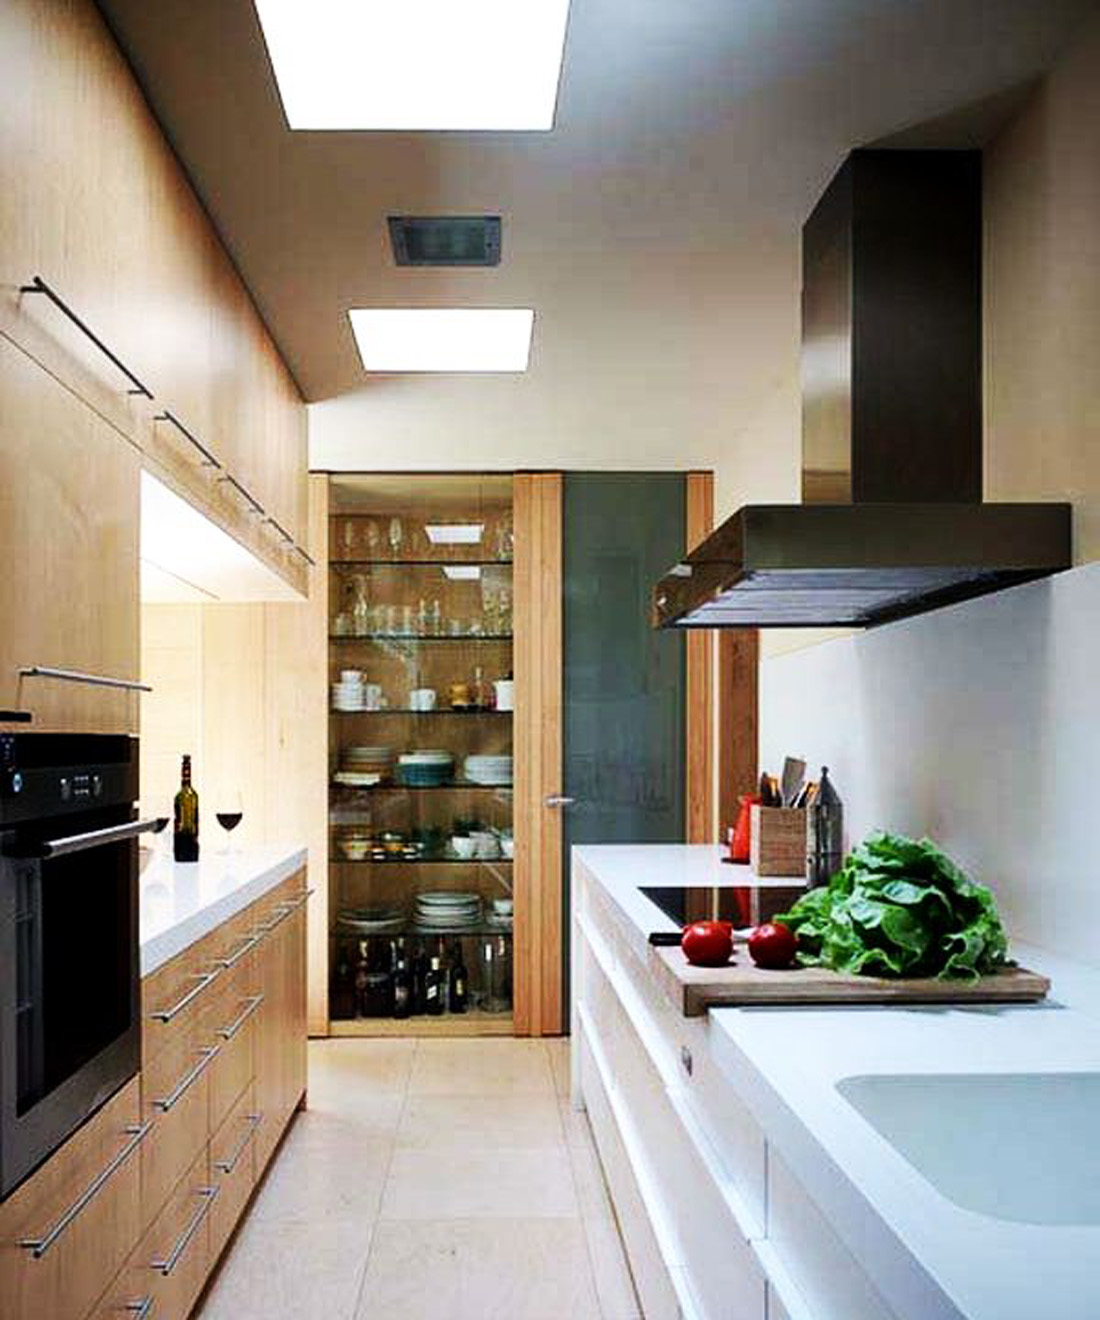 Kitchen Design Ideas For Small House 25 Modern Small Kitchen Design Ideas